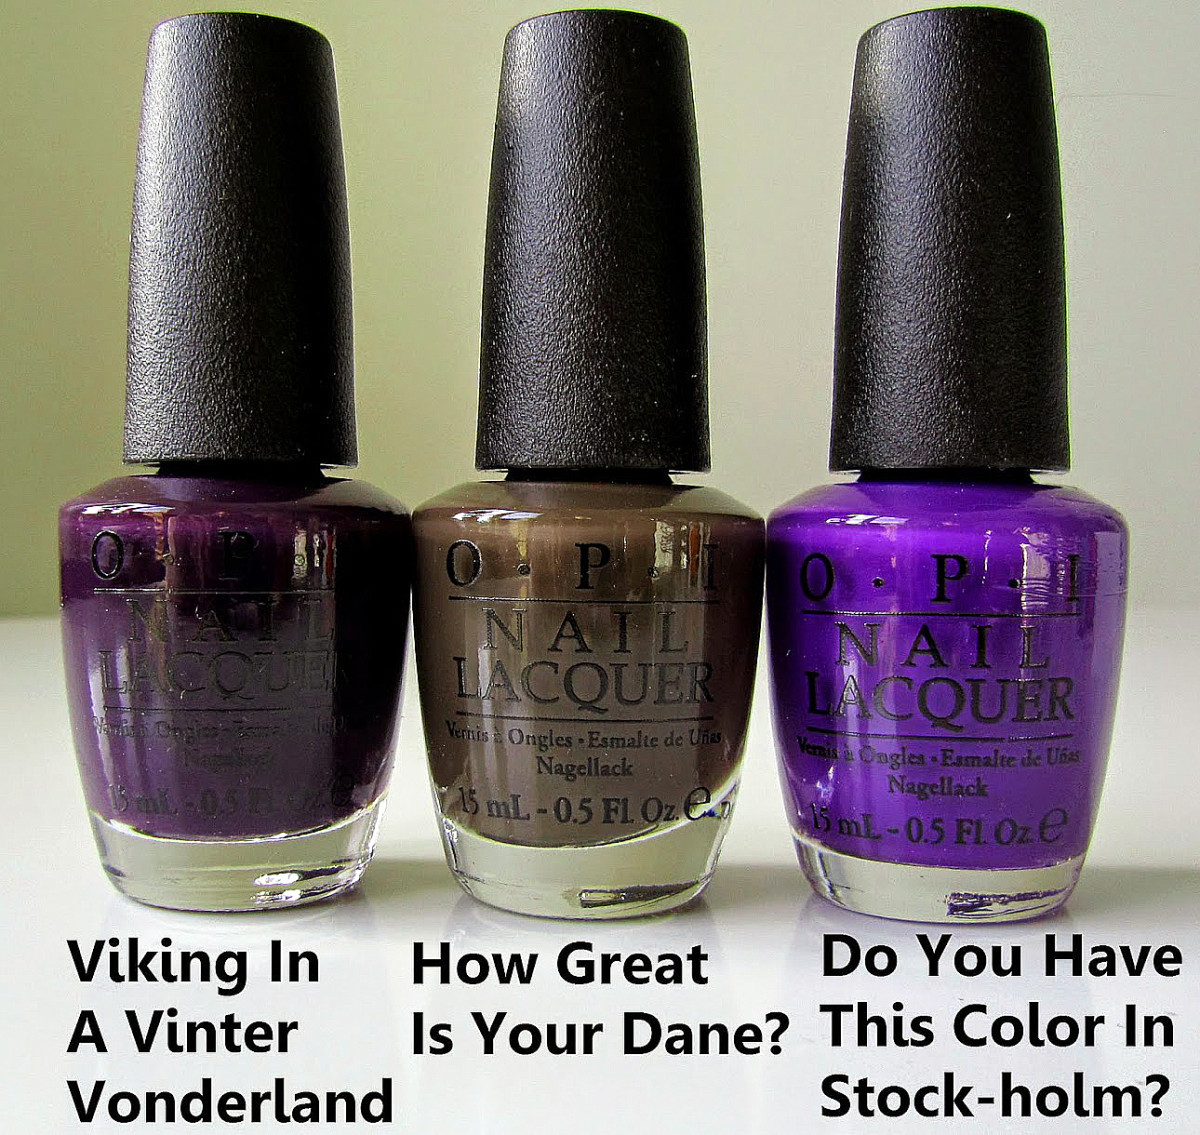 OPI Nordic collection_Fall Winter 2014_Viking in Vinter Vonderland_How Great is Your Dane_Do You Have This Color in Stock-holm